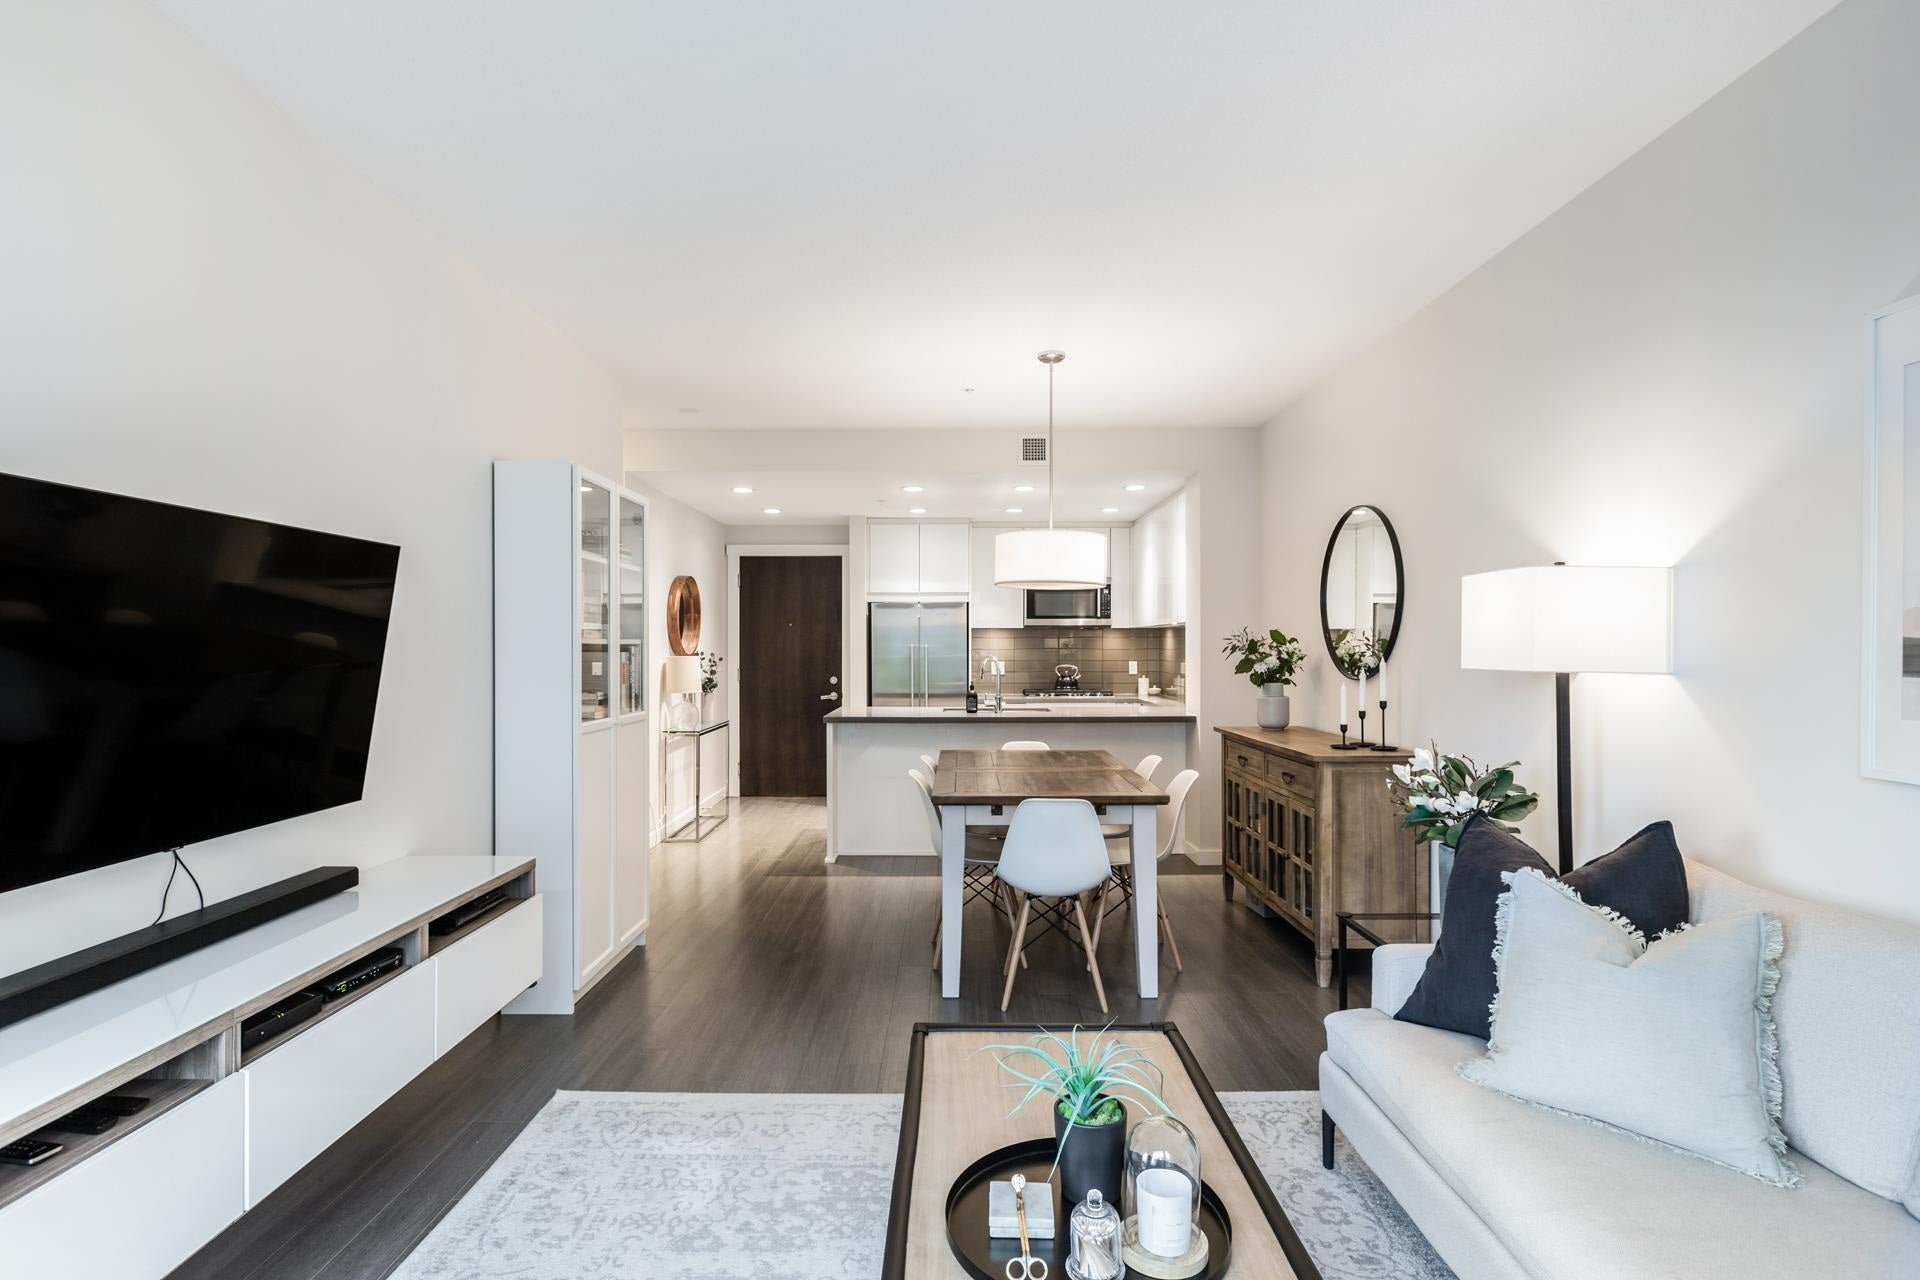 207 255 W 1ST STREET - Lower Lonsdale Apartment/Condo for sale, 2 Bedrooms (R2603882) - #12